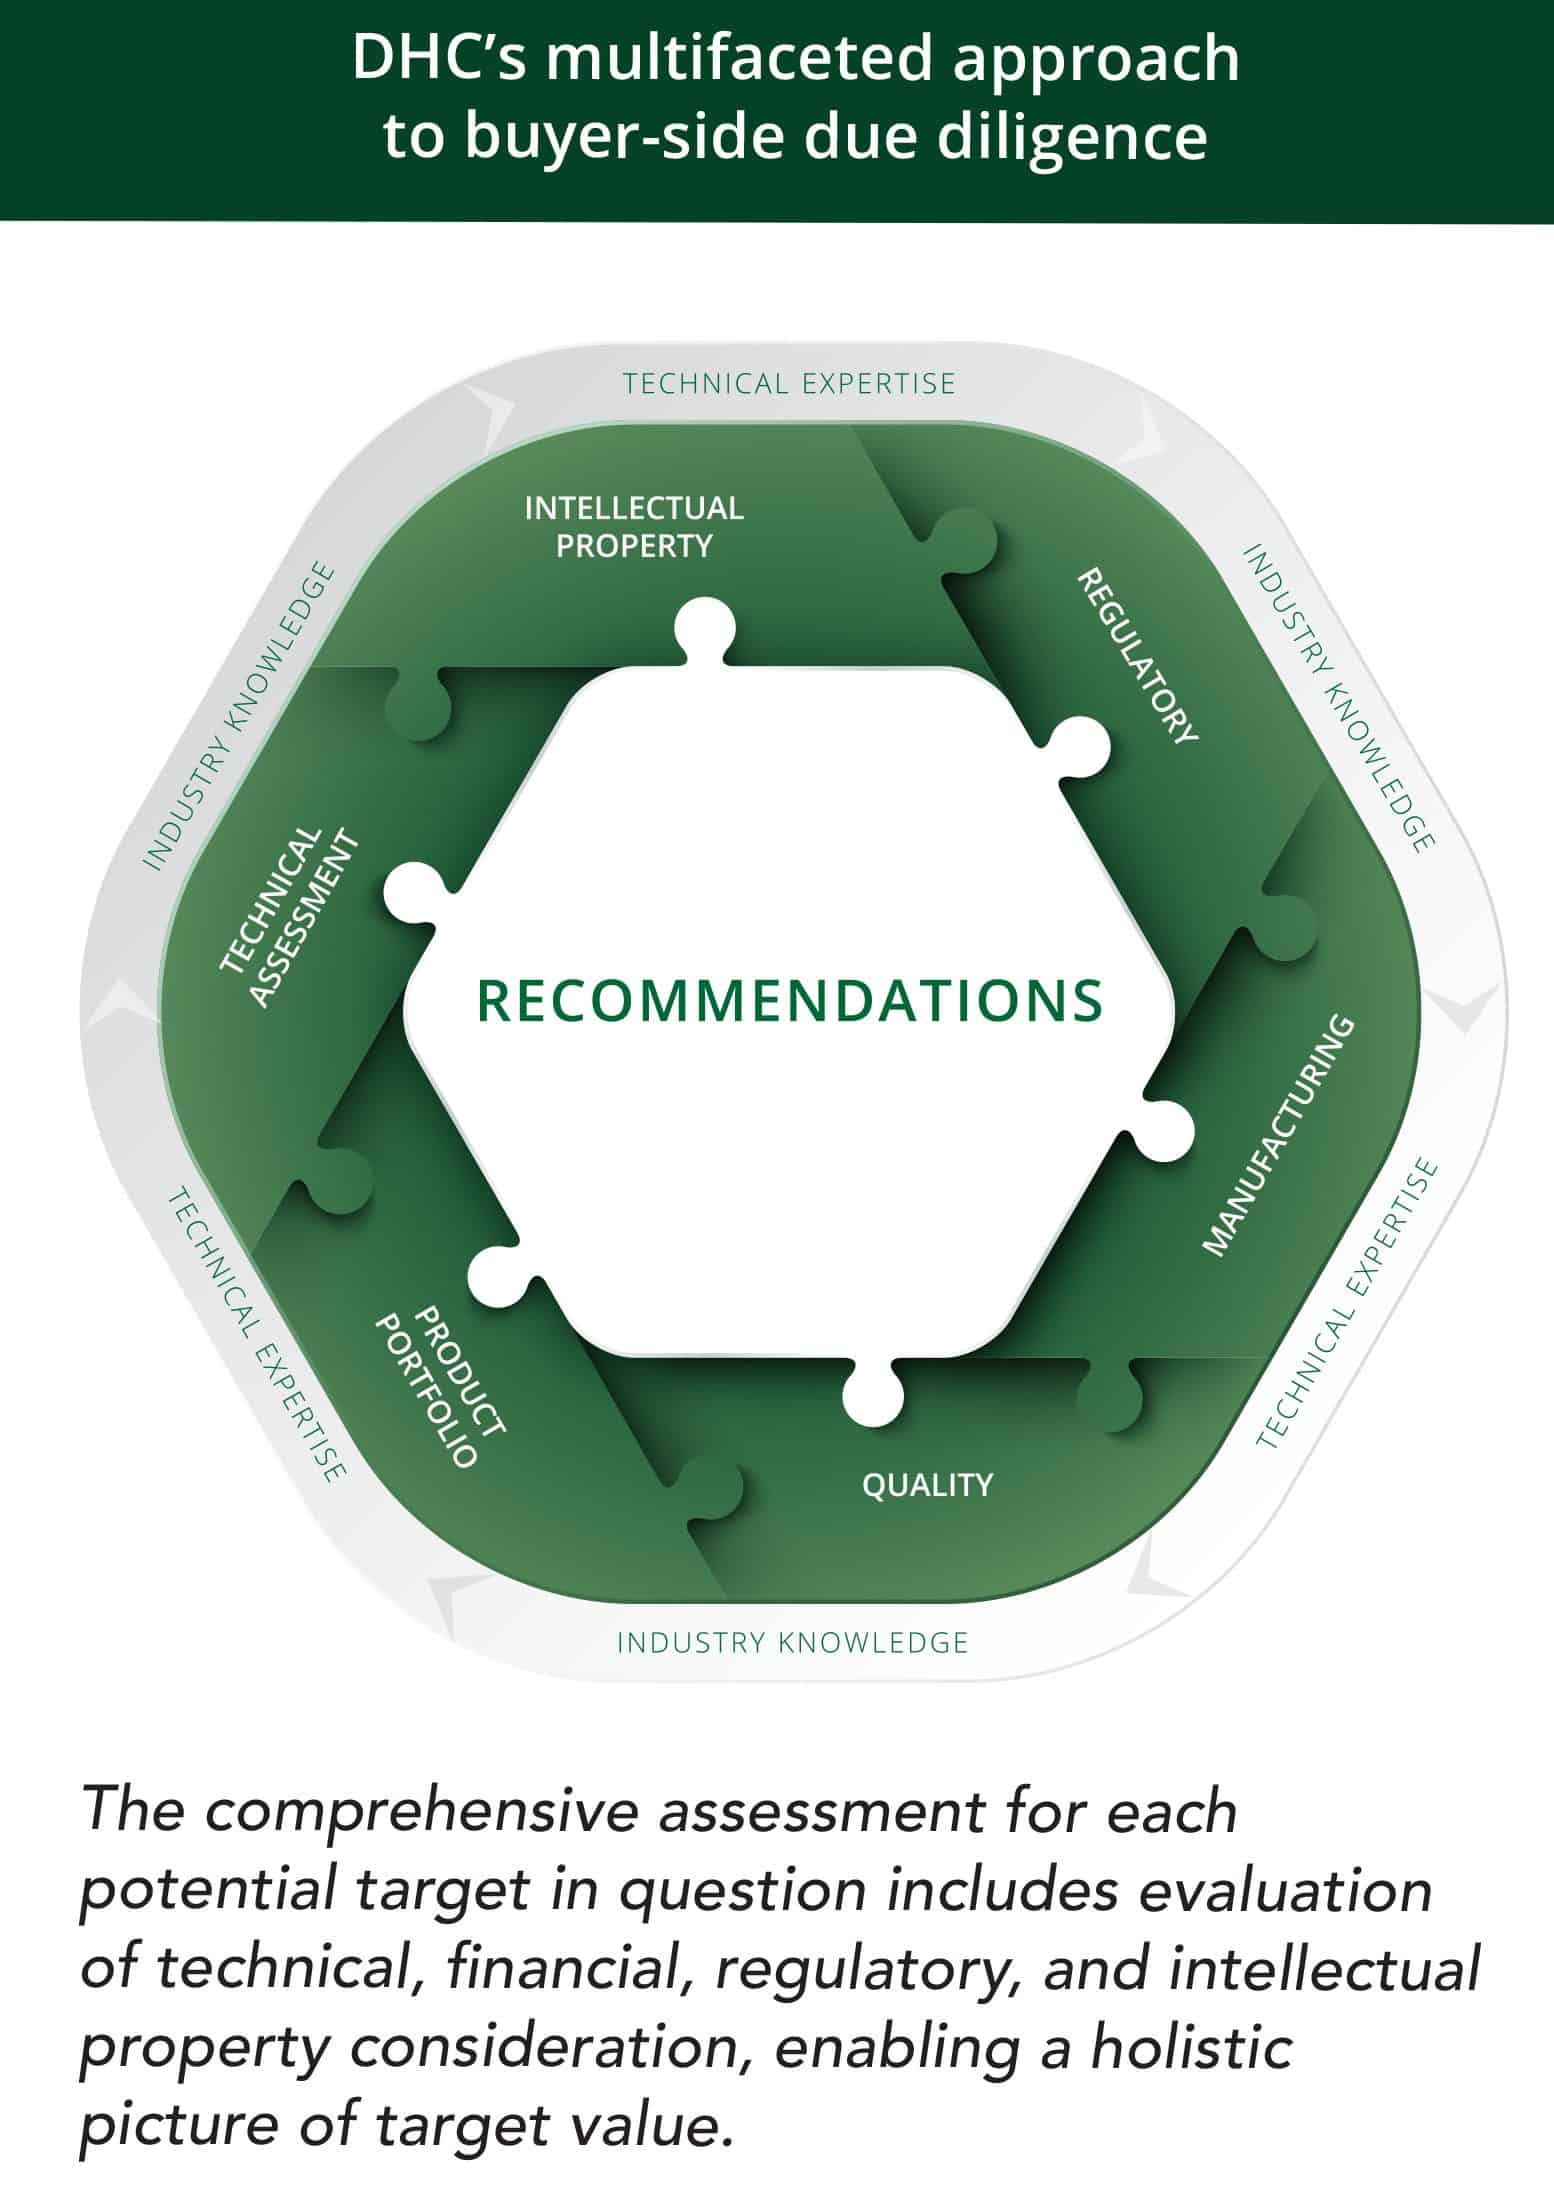 puzzle piece graphic showing the various elements of our due diligence approach